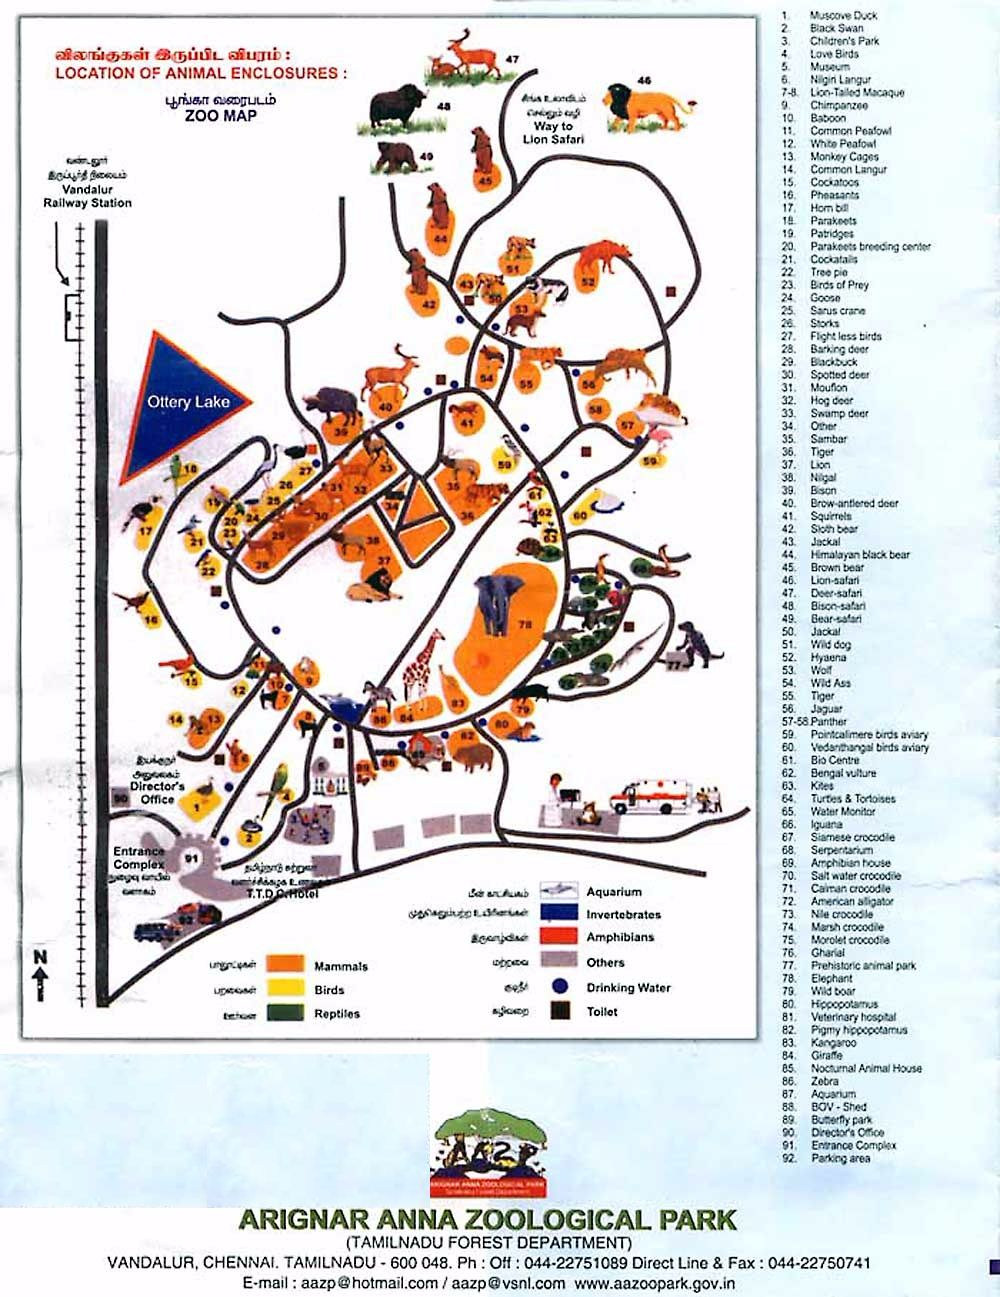 Vandalur Zoo Map Layout along with animal location